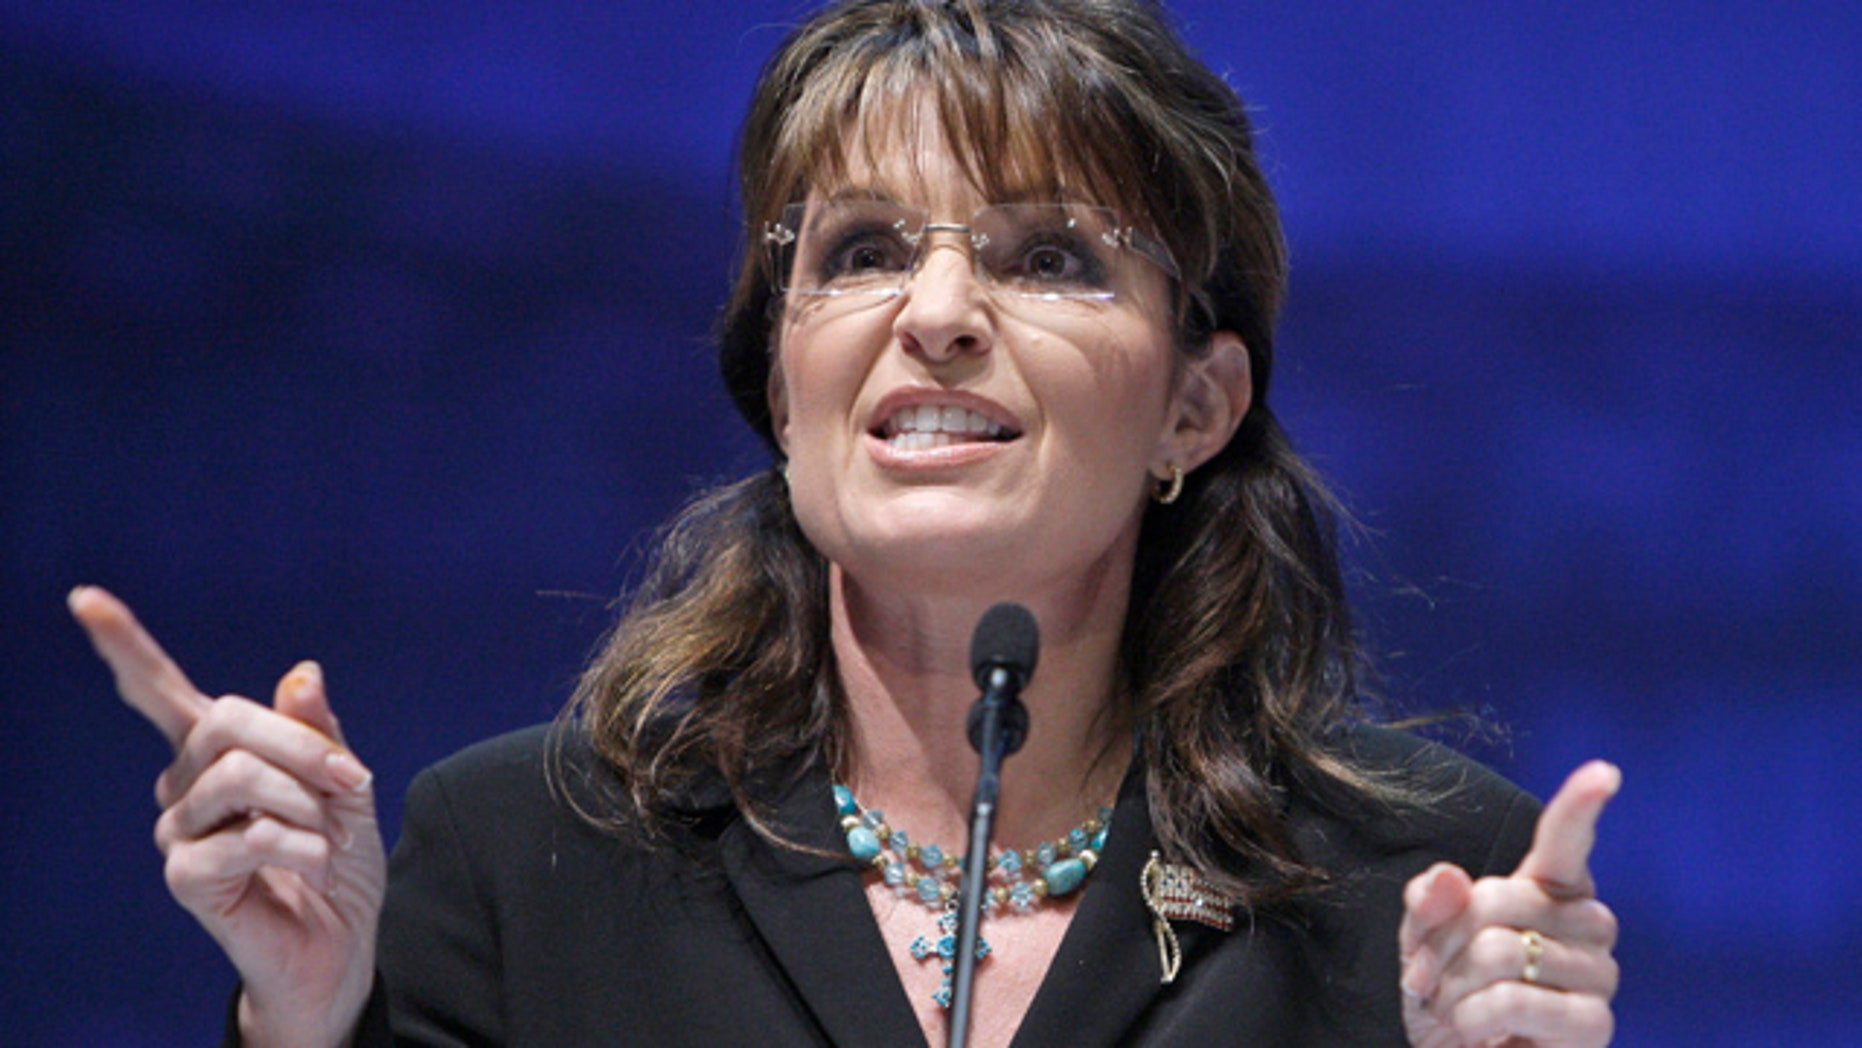 May 14: Sarah Palin speaks during the NRA national convention in Charlotte, N.C.